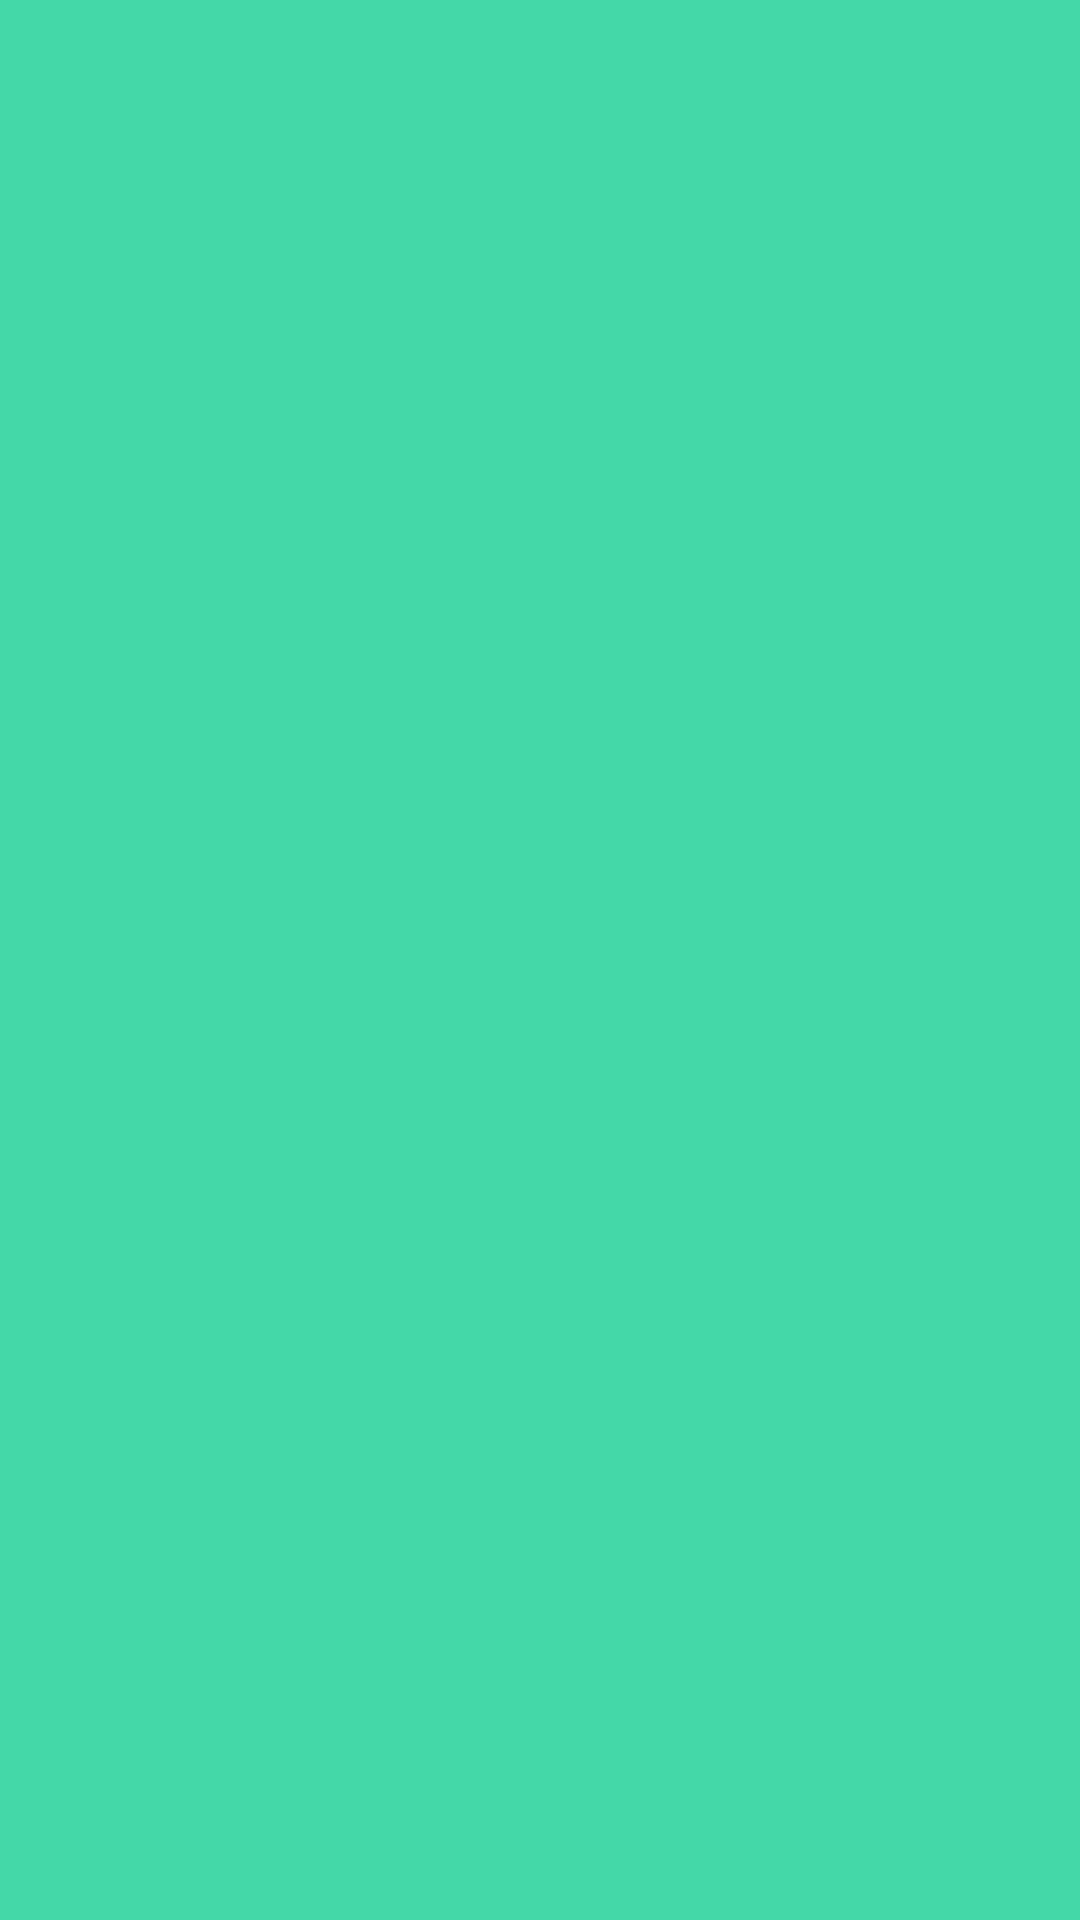 1080x1920 Eucalyptus Solid Color Background